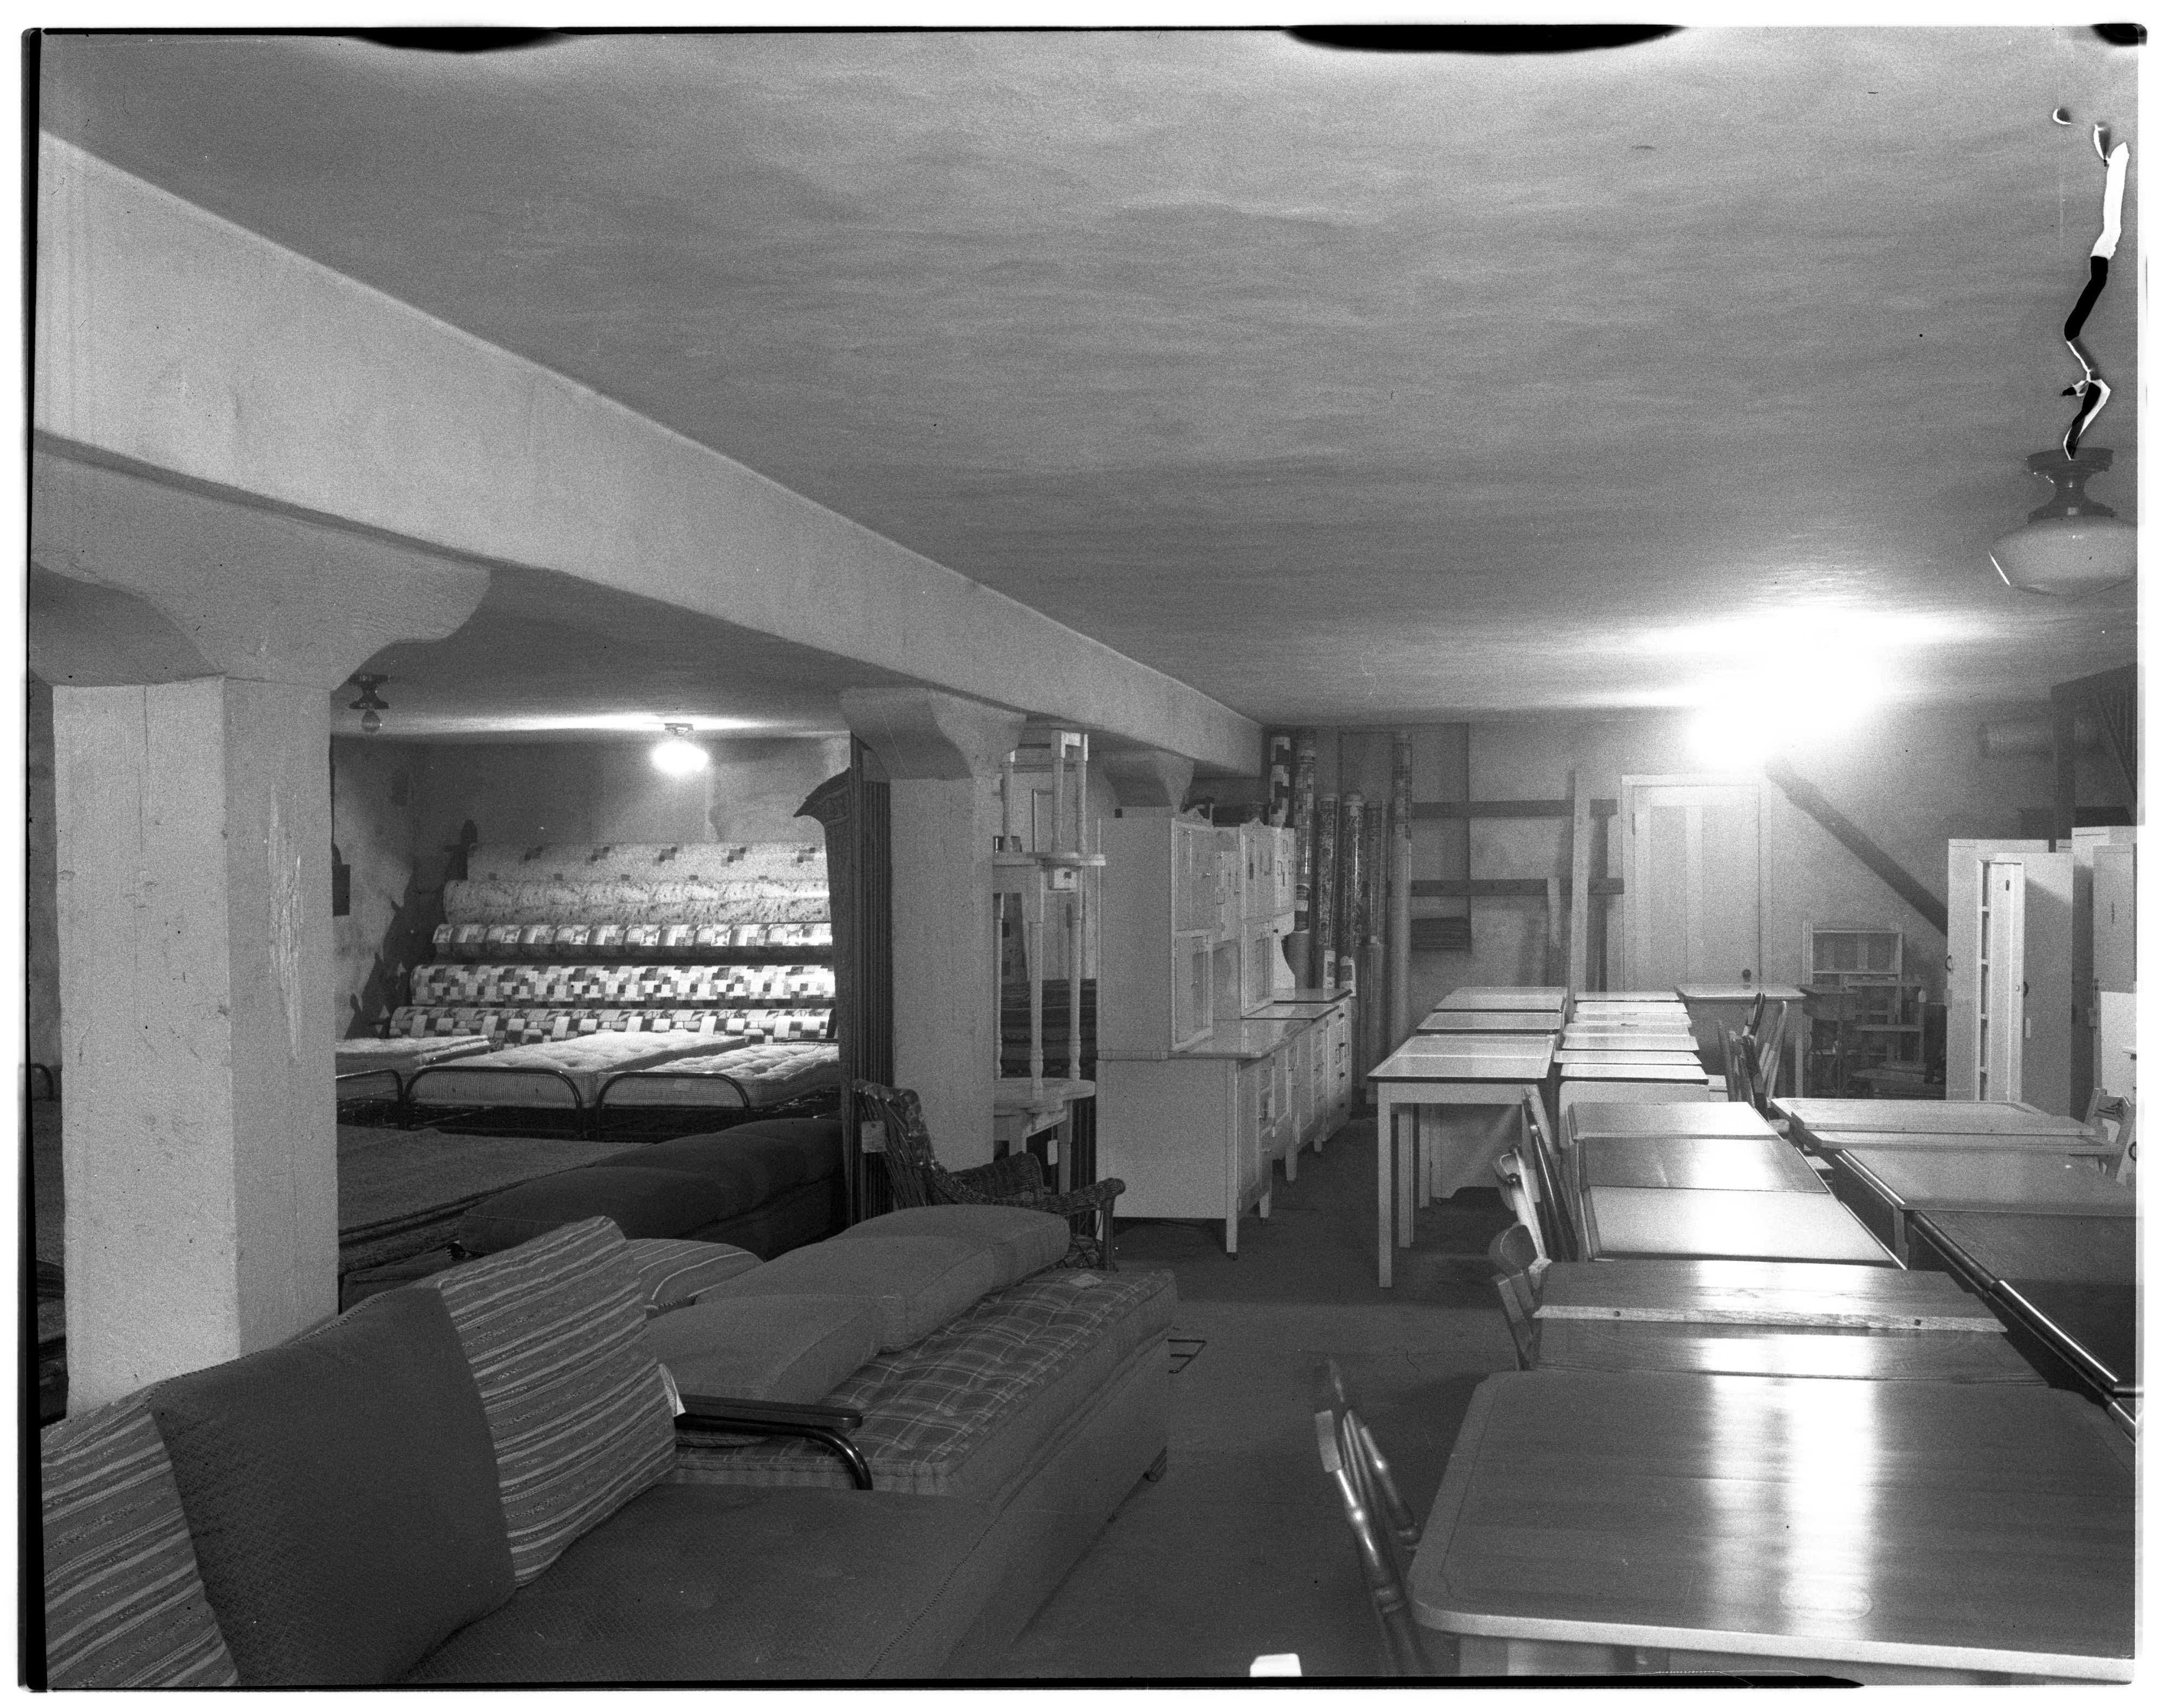 Warehouse Furniture Store Interior View, September 1936 image